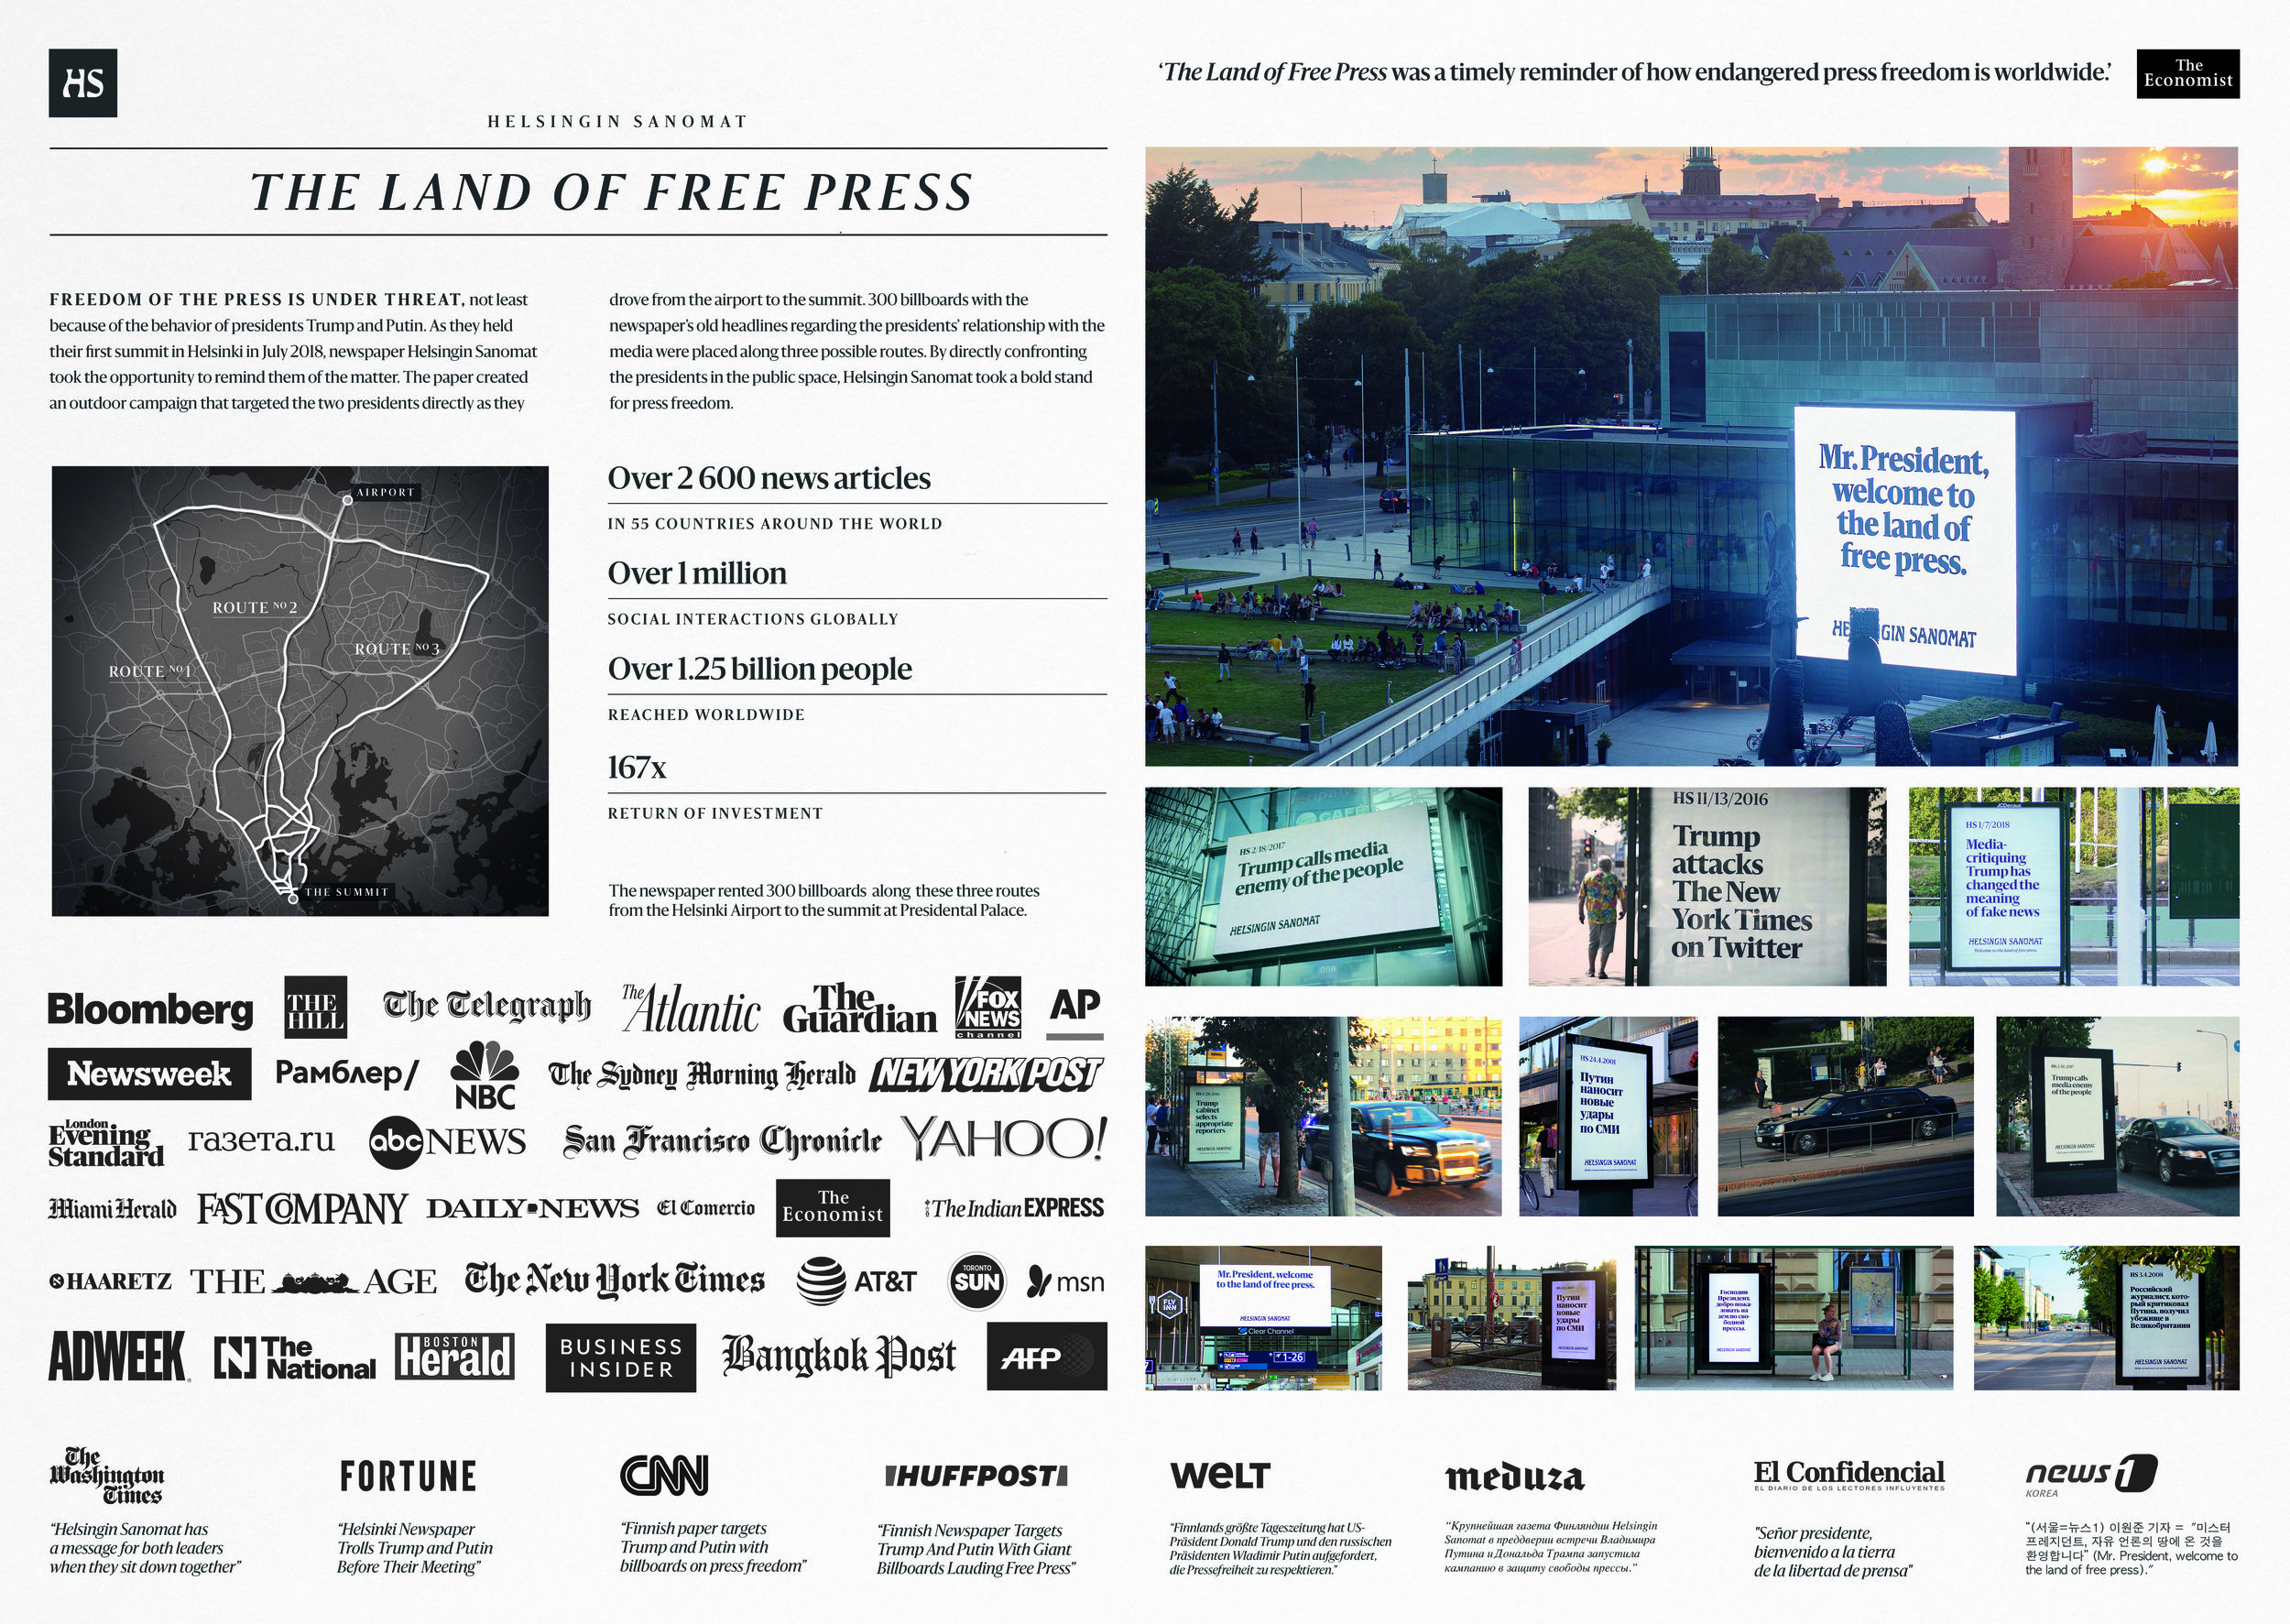 HS_The_Land_Of_Free_Press_Digital_Presentation_Image_Direct.jpg